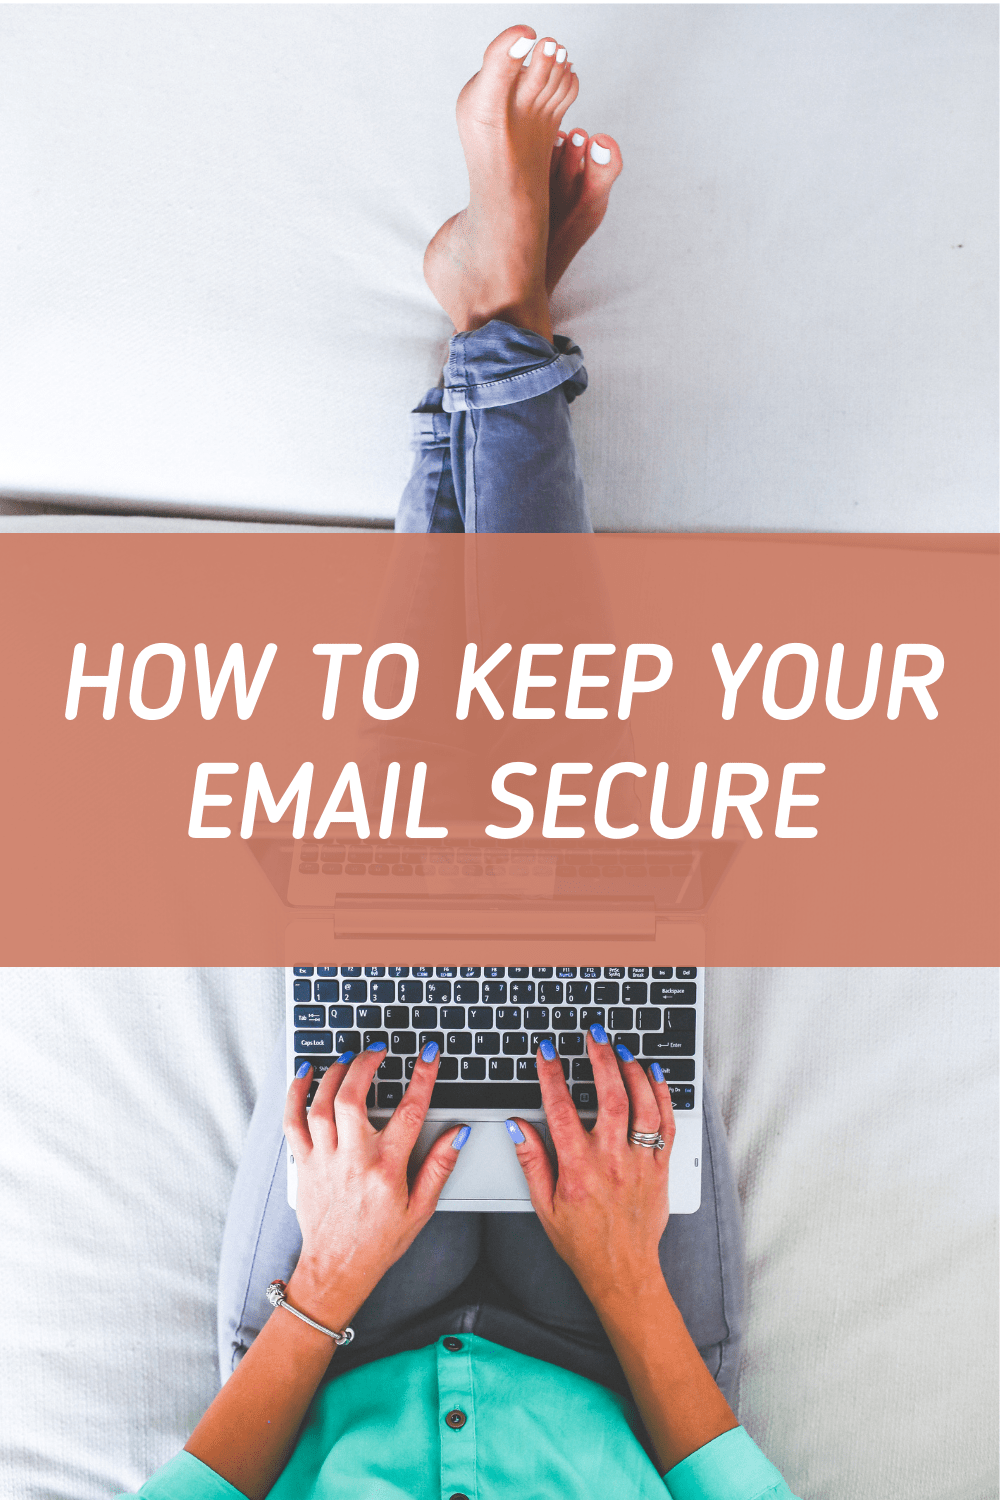 How To Keep Your Email Secure